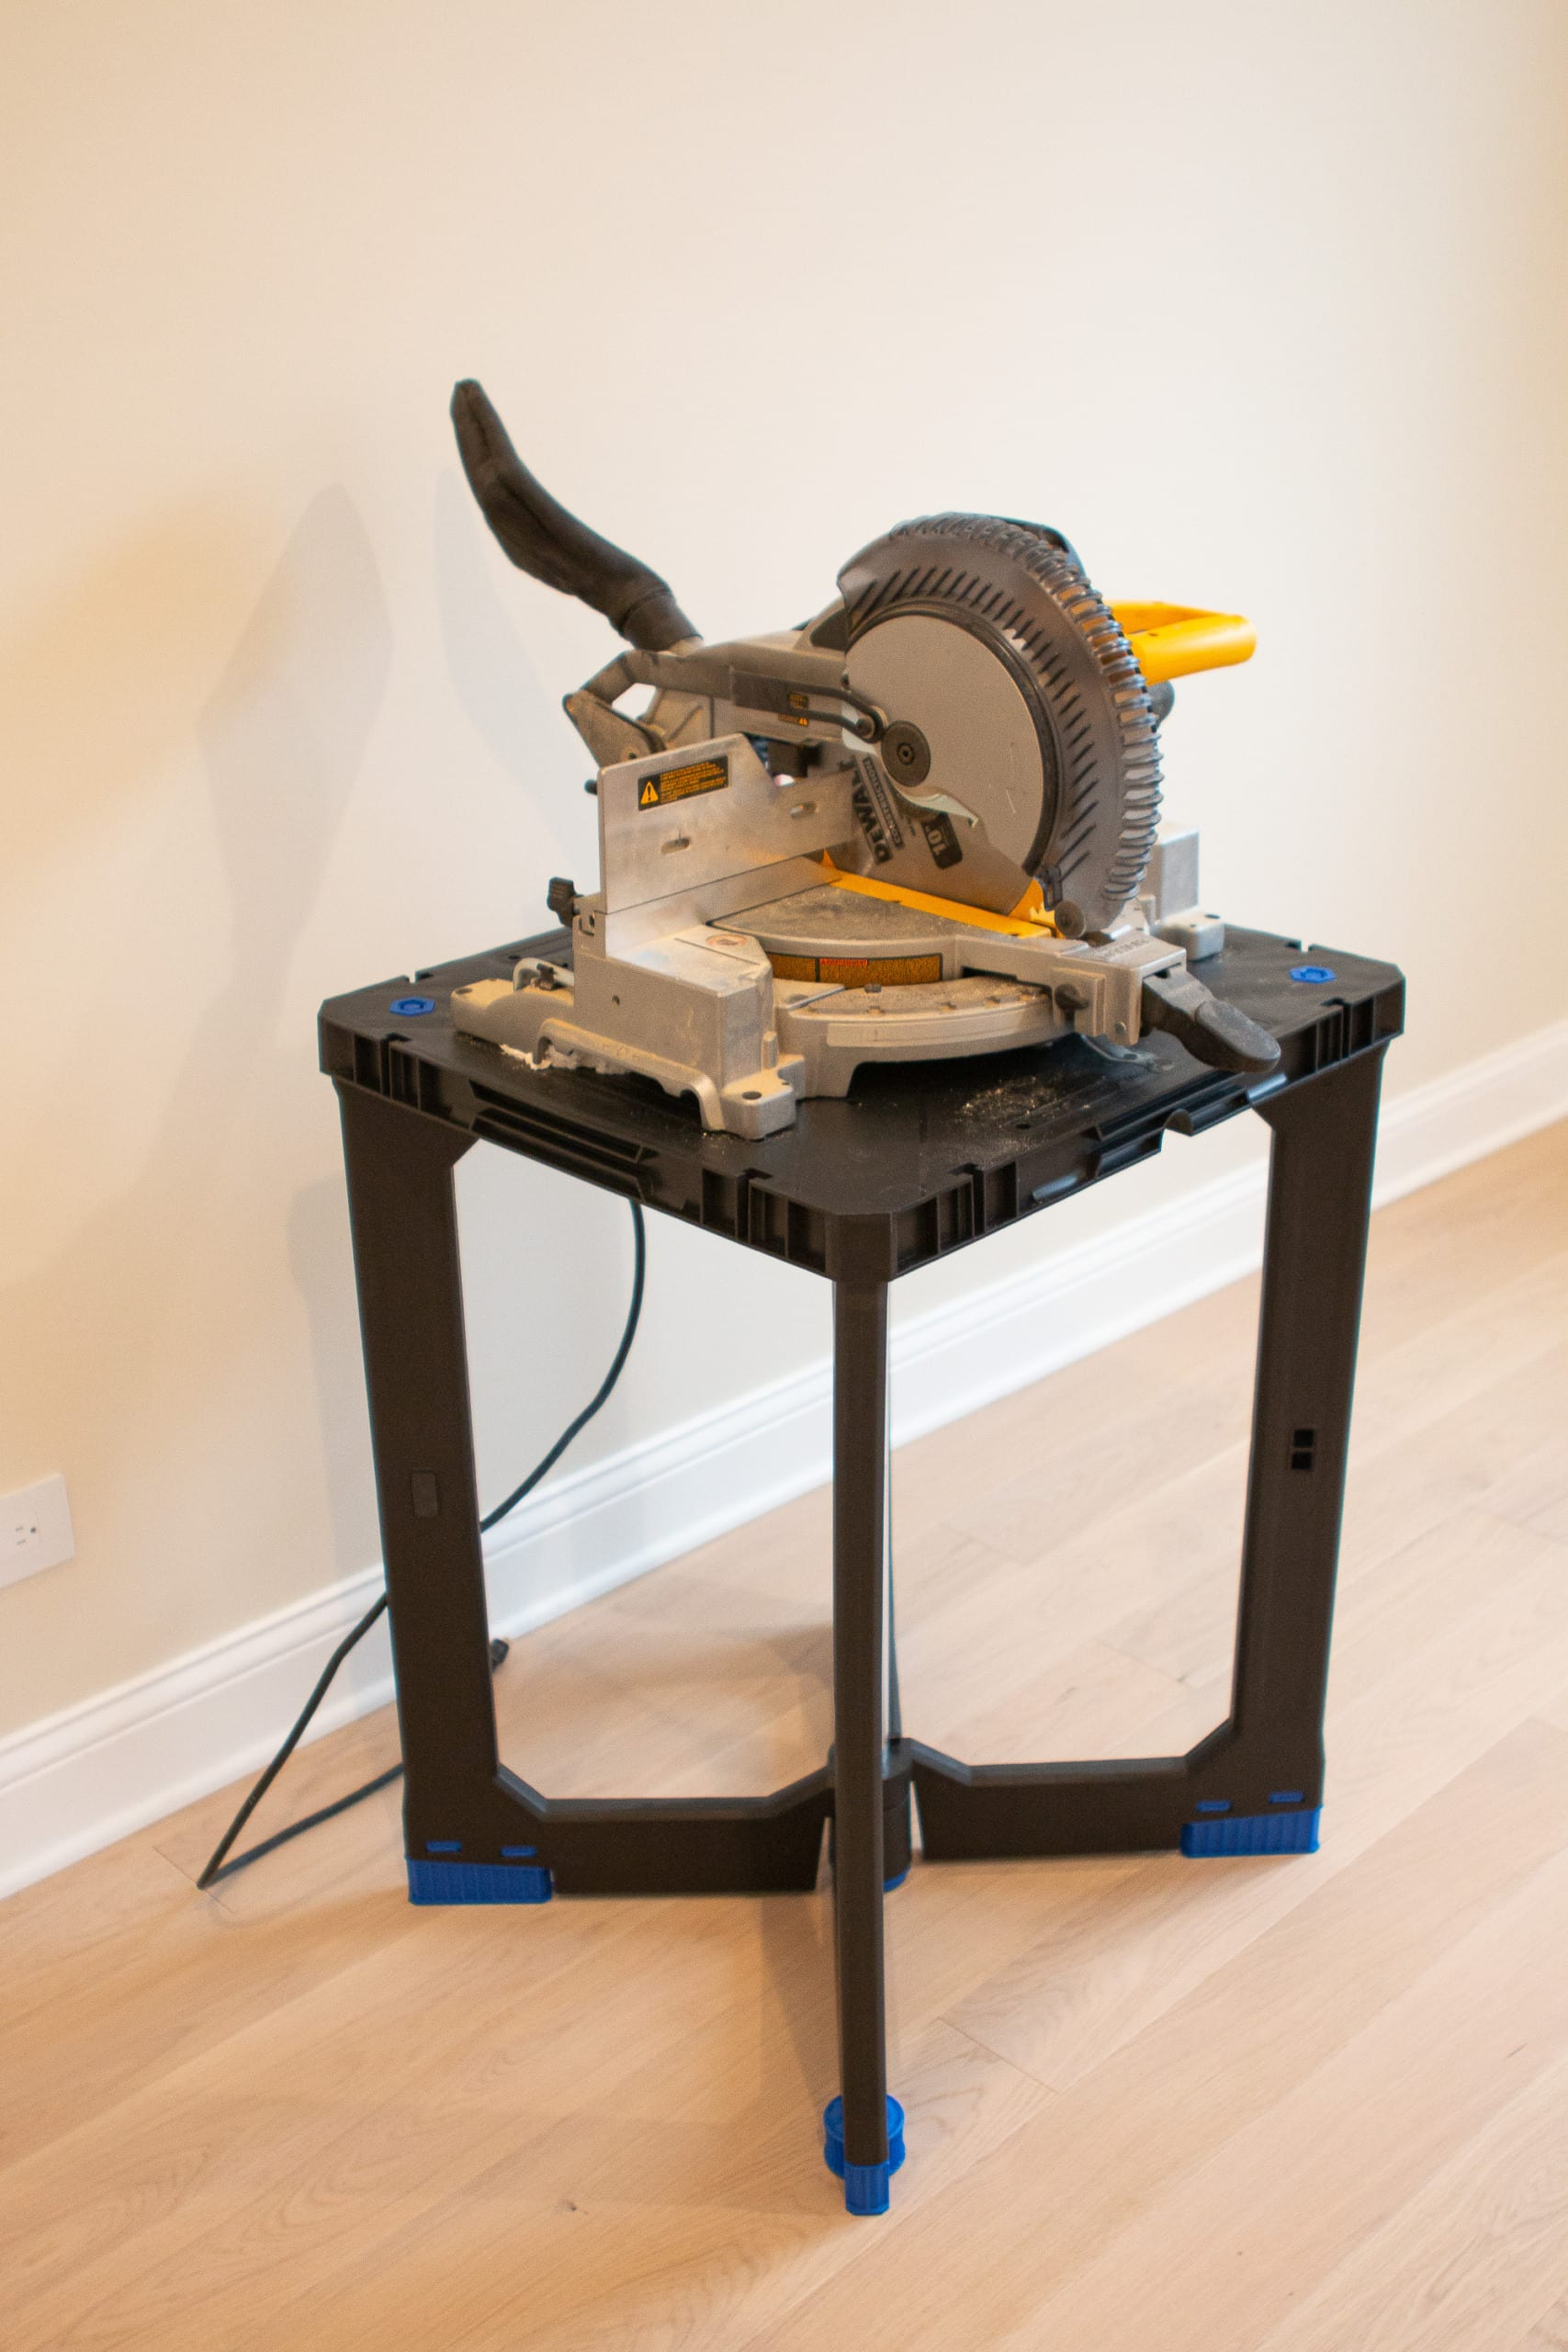 Miter saw on a stand